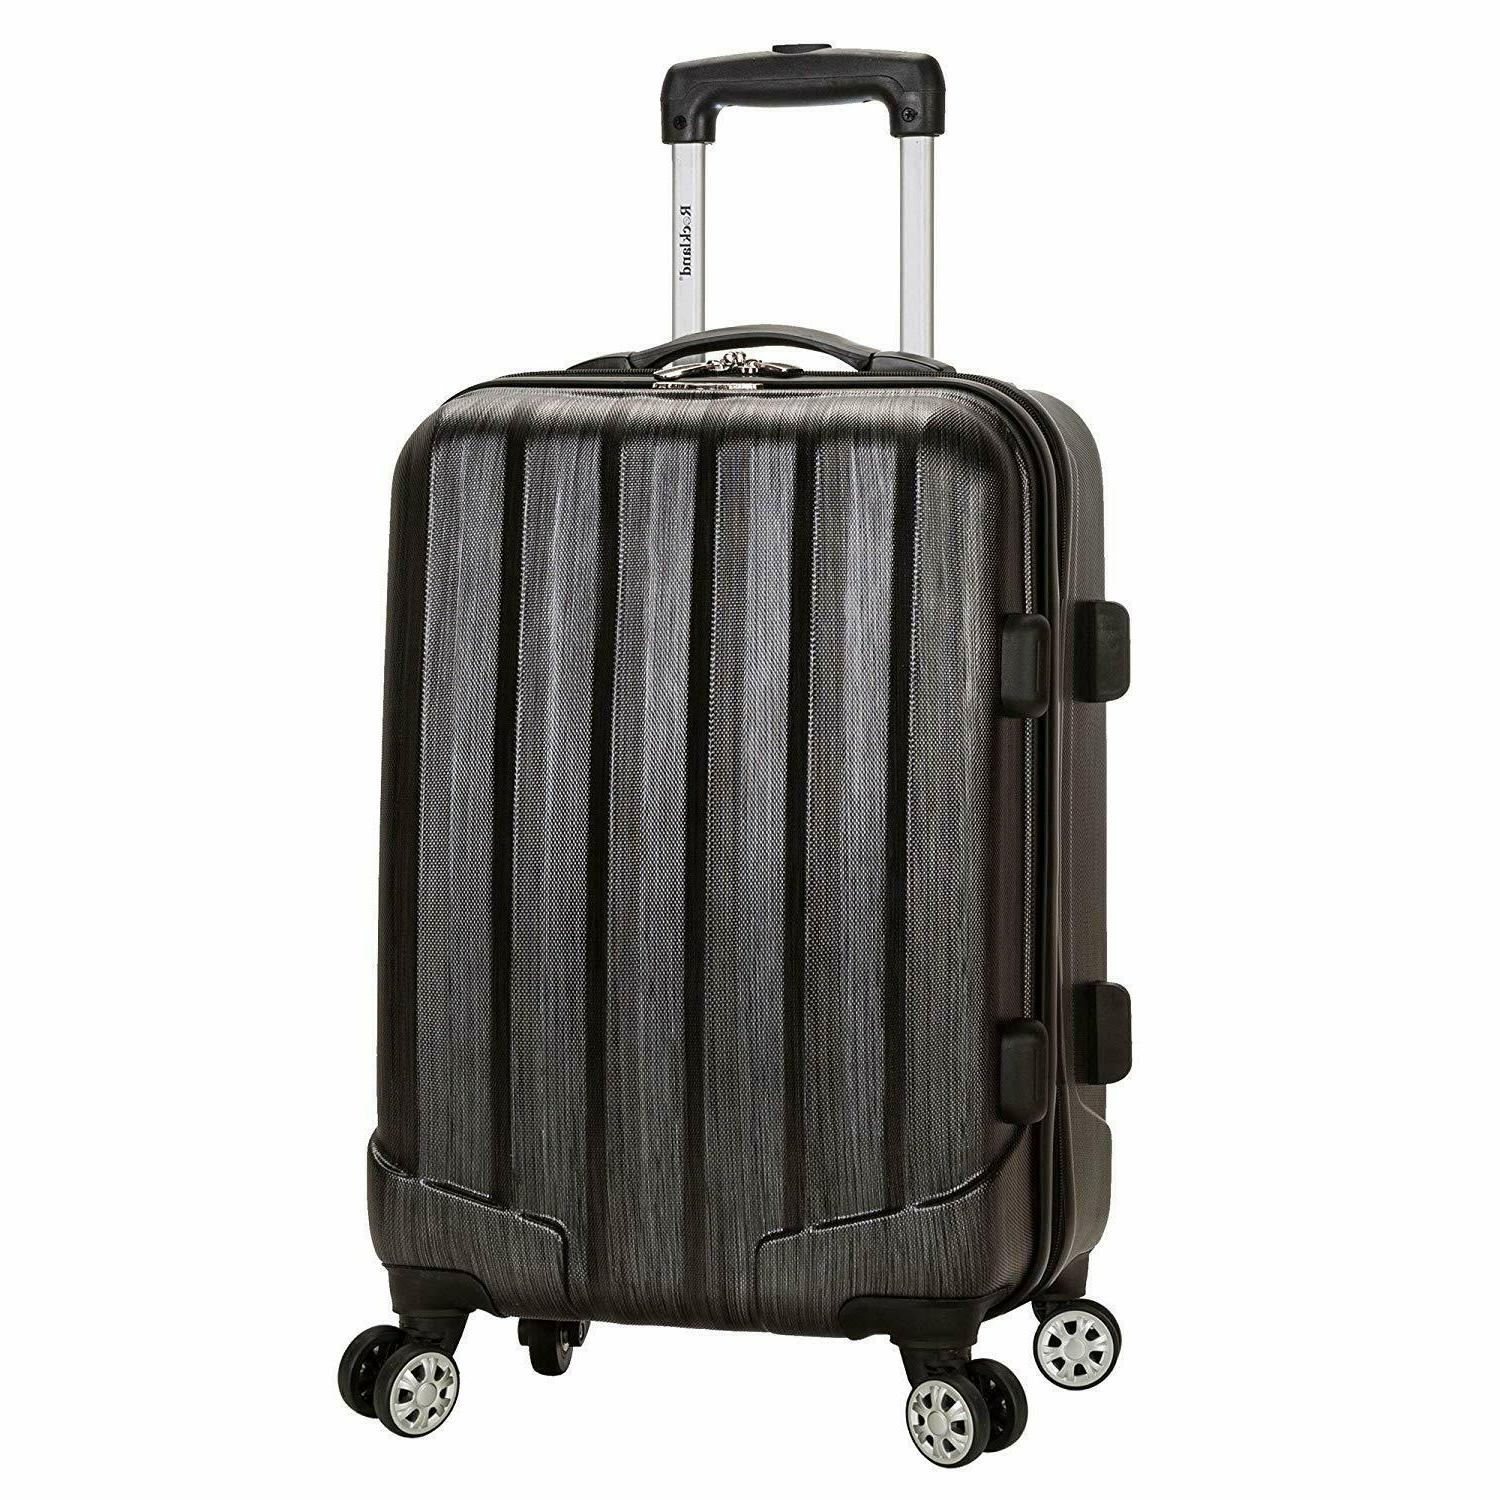 melbourne 20 inch expandable abs carry on